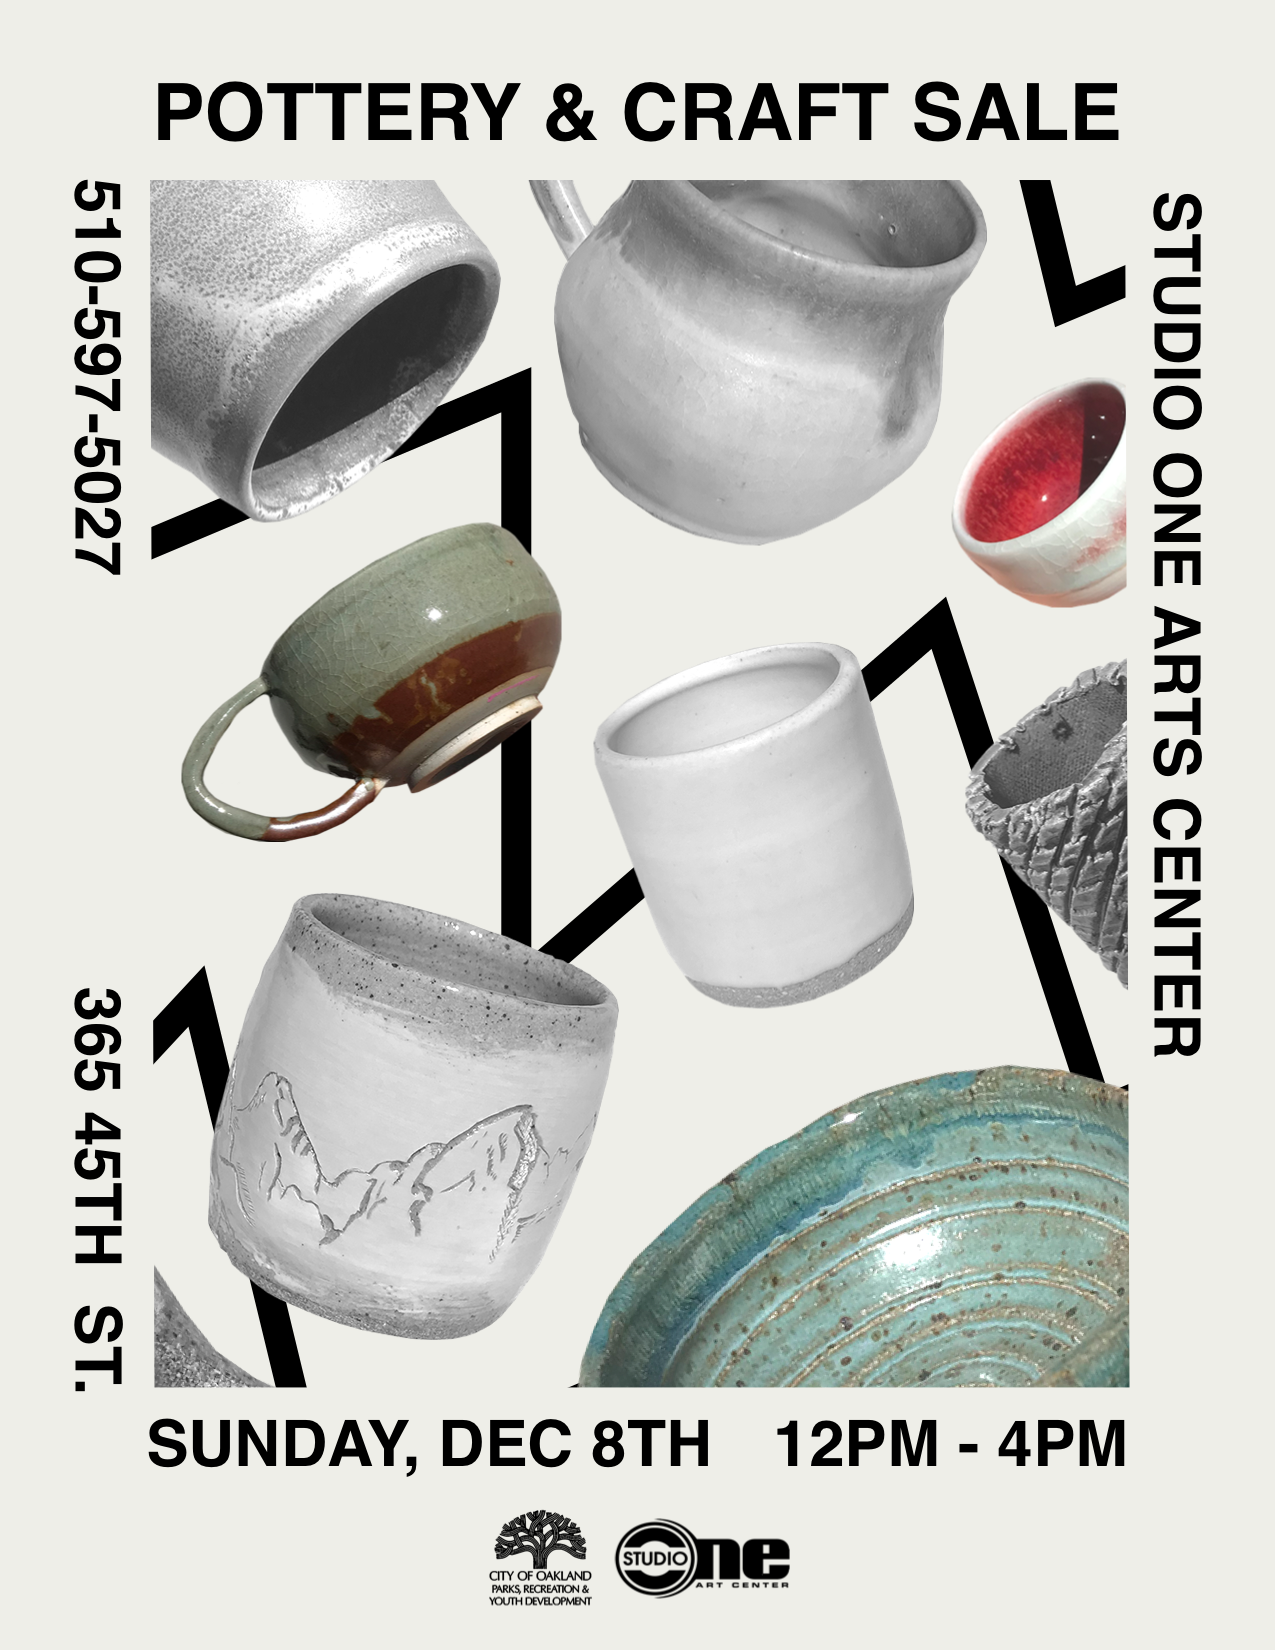 Studio One Annual Pottery and Craft Sale Image